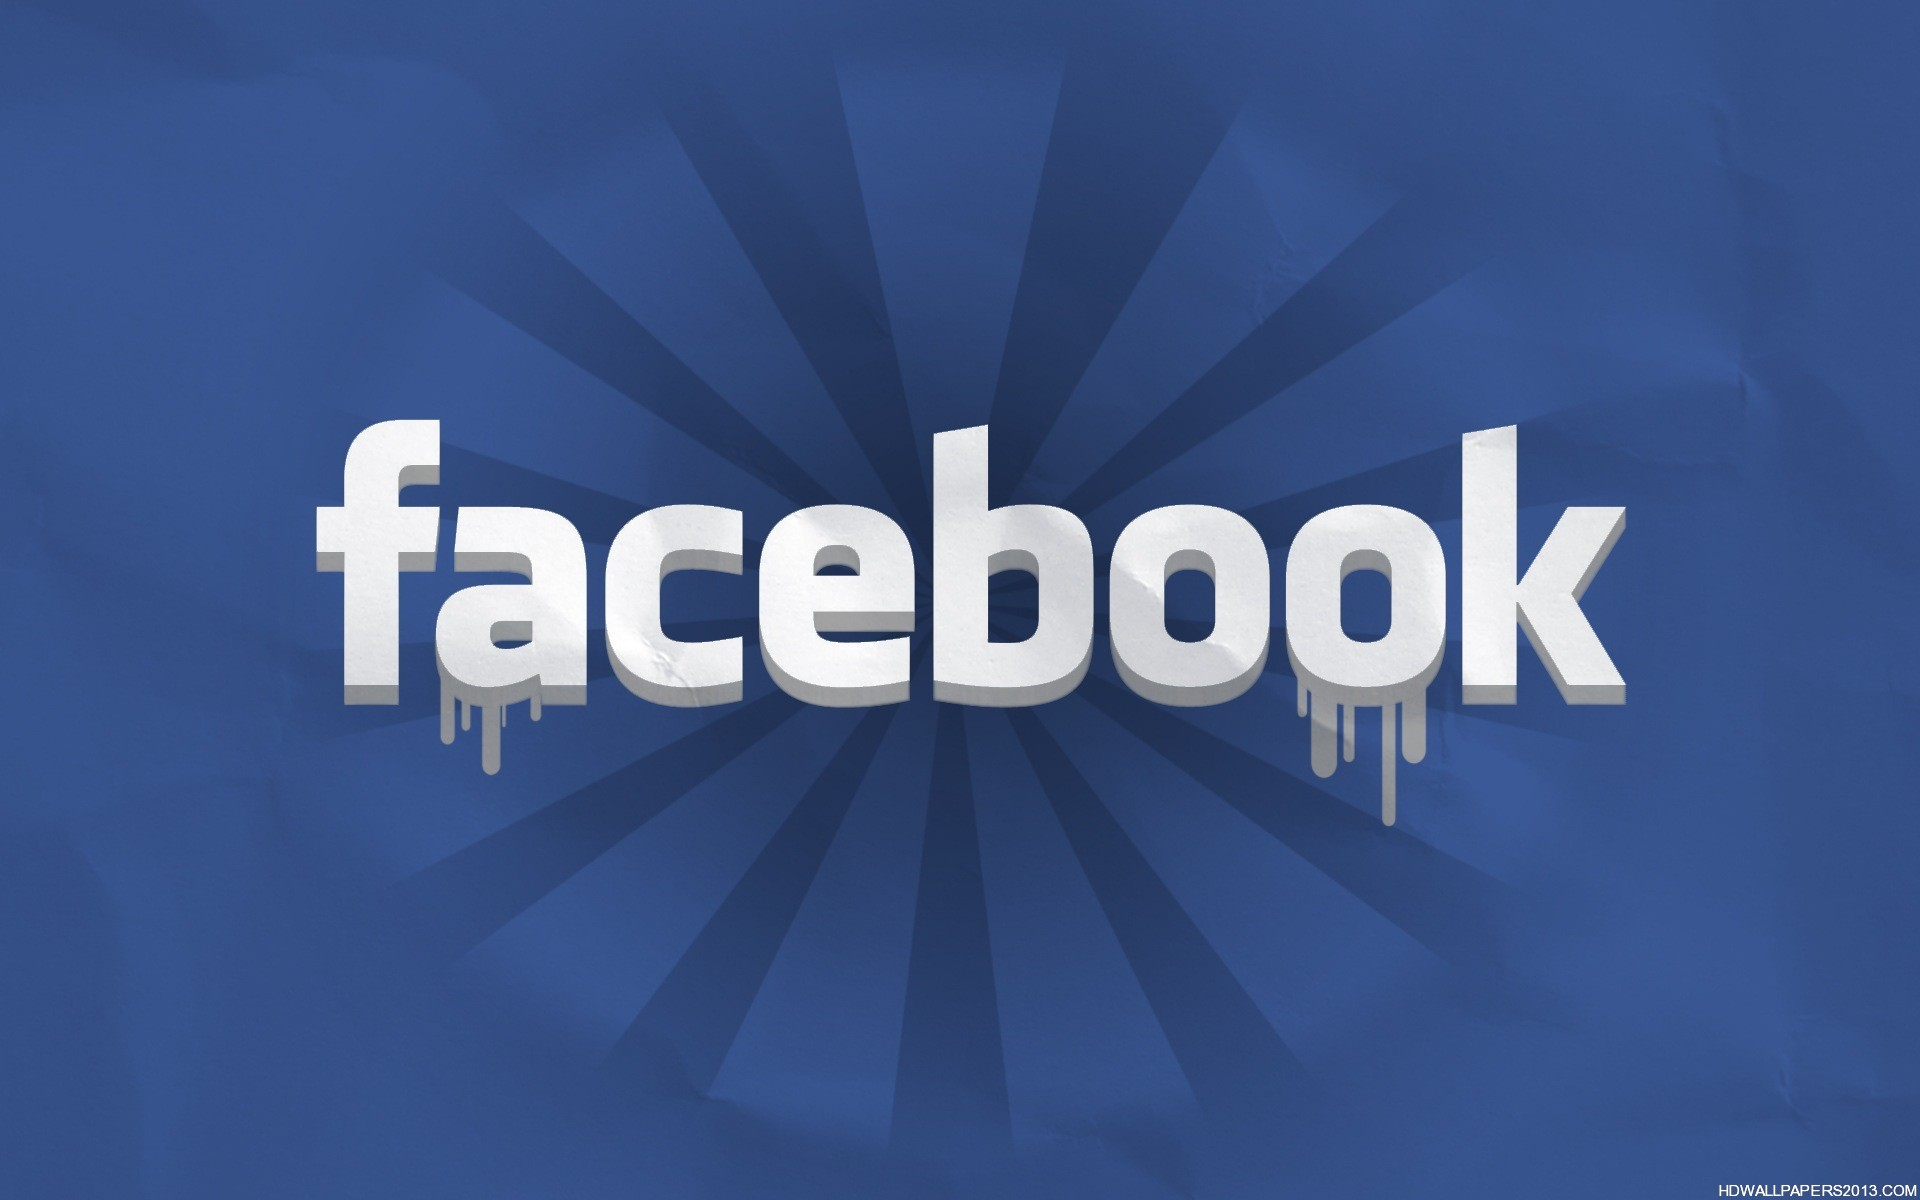 facebook banners high definition wallpapers high